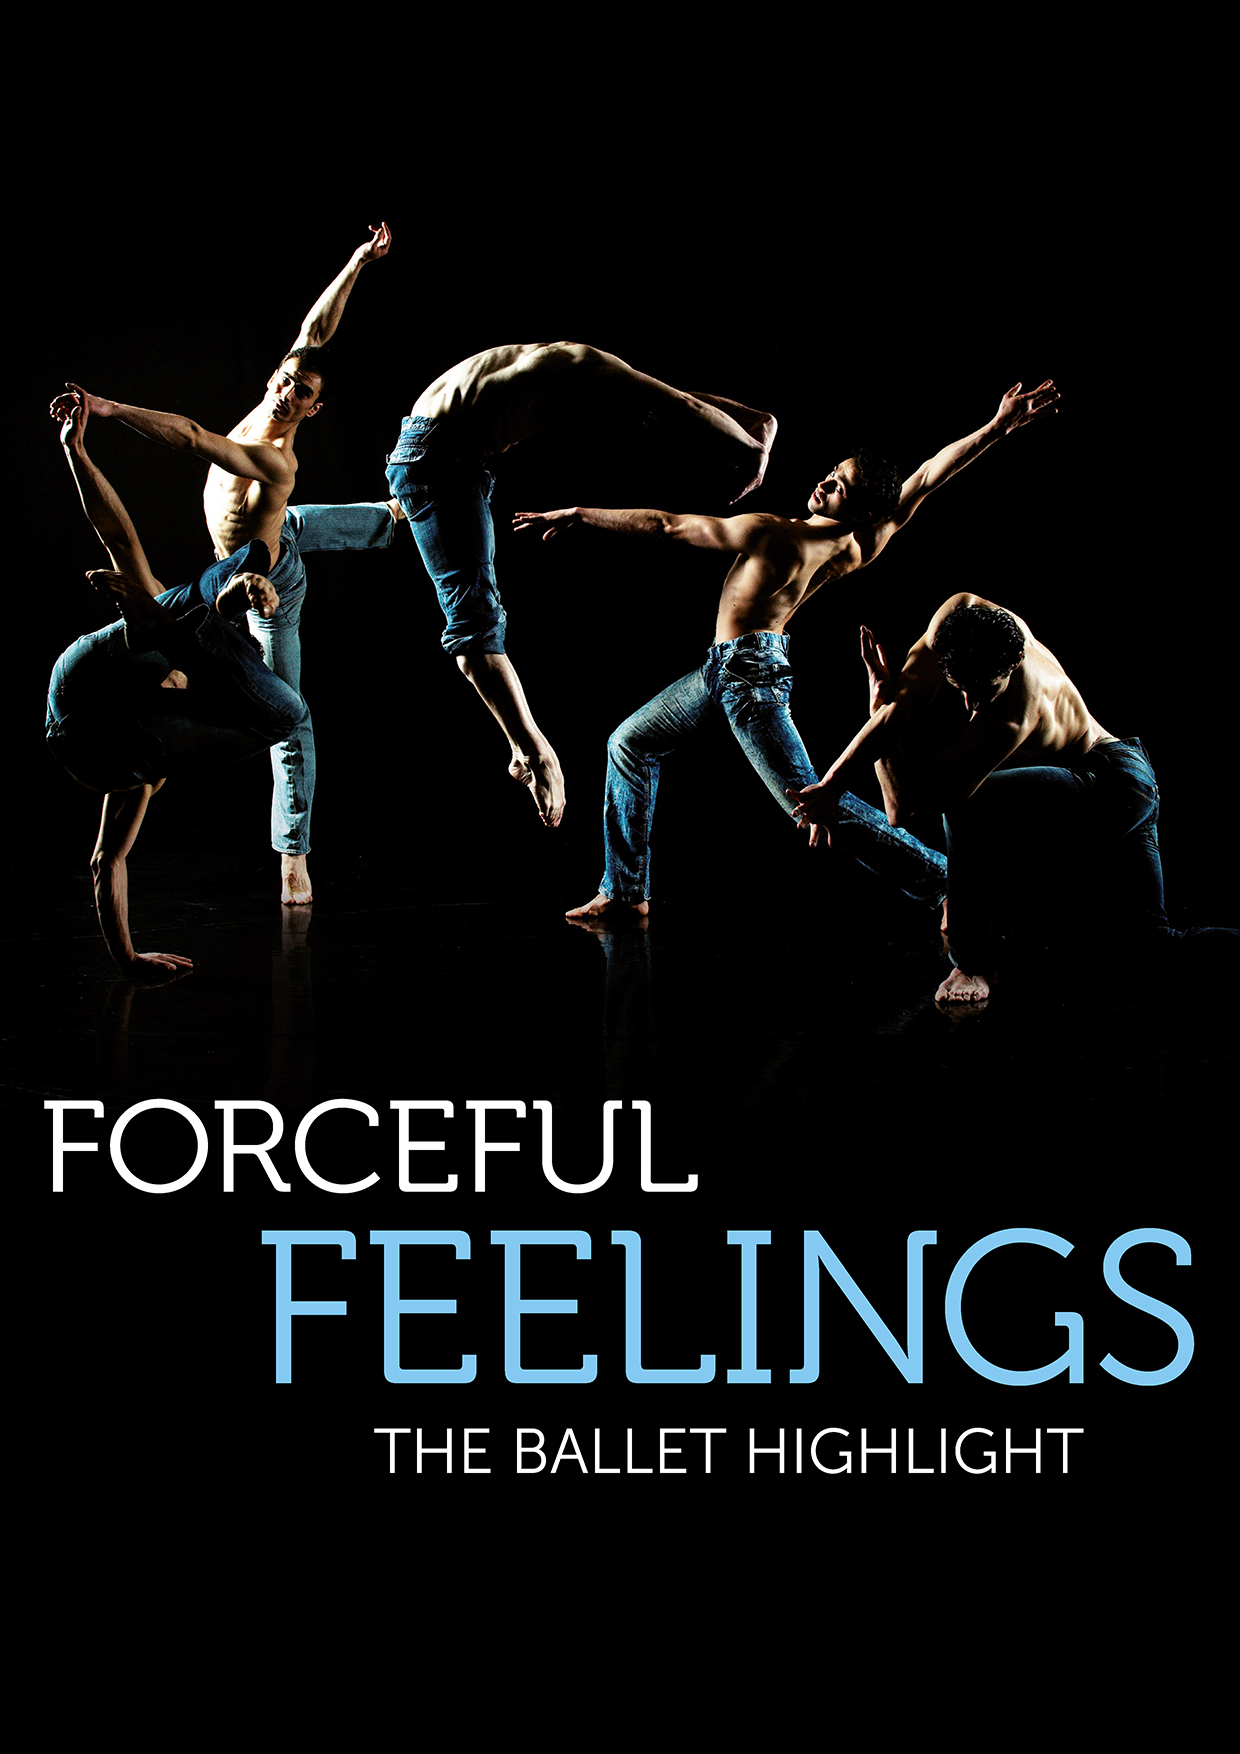 Forceful Feelings - The Ballet Highlight